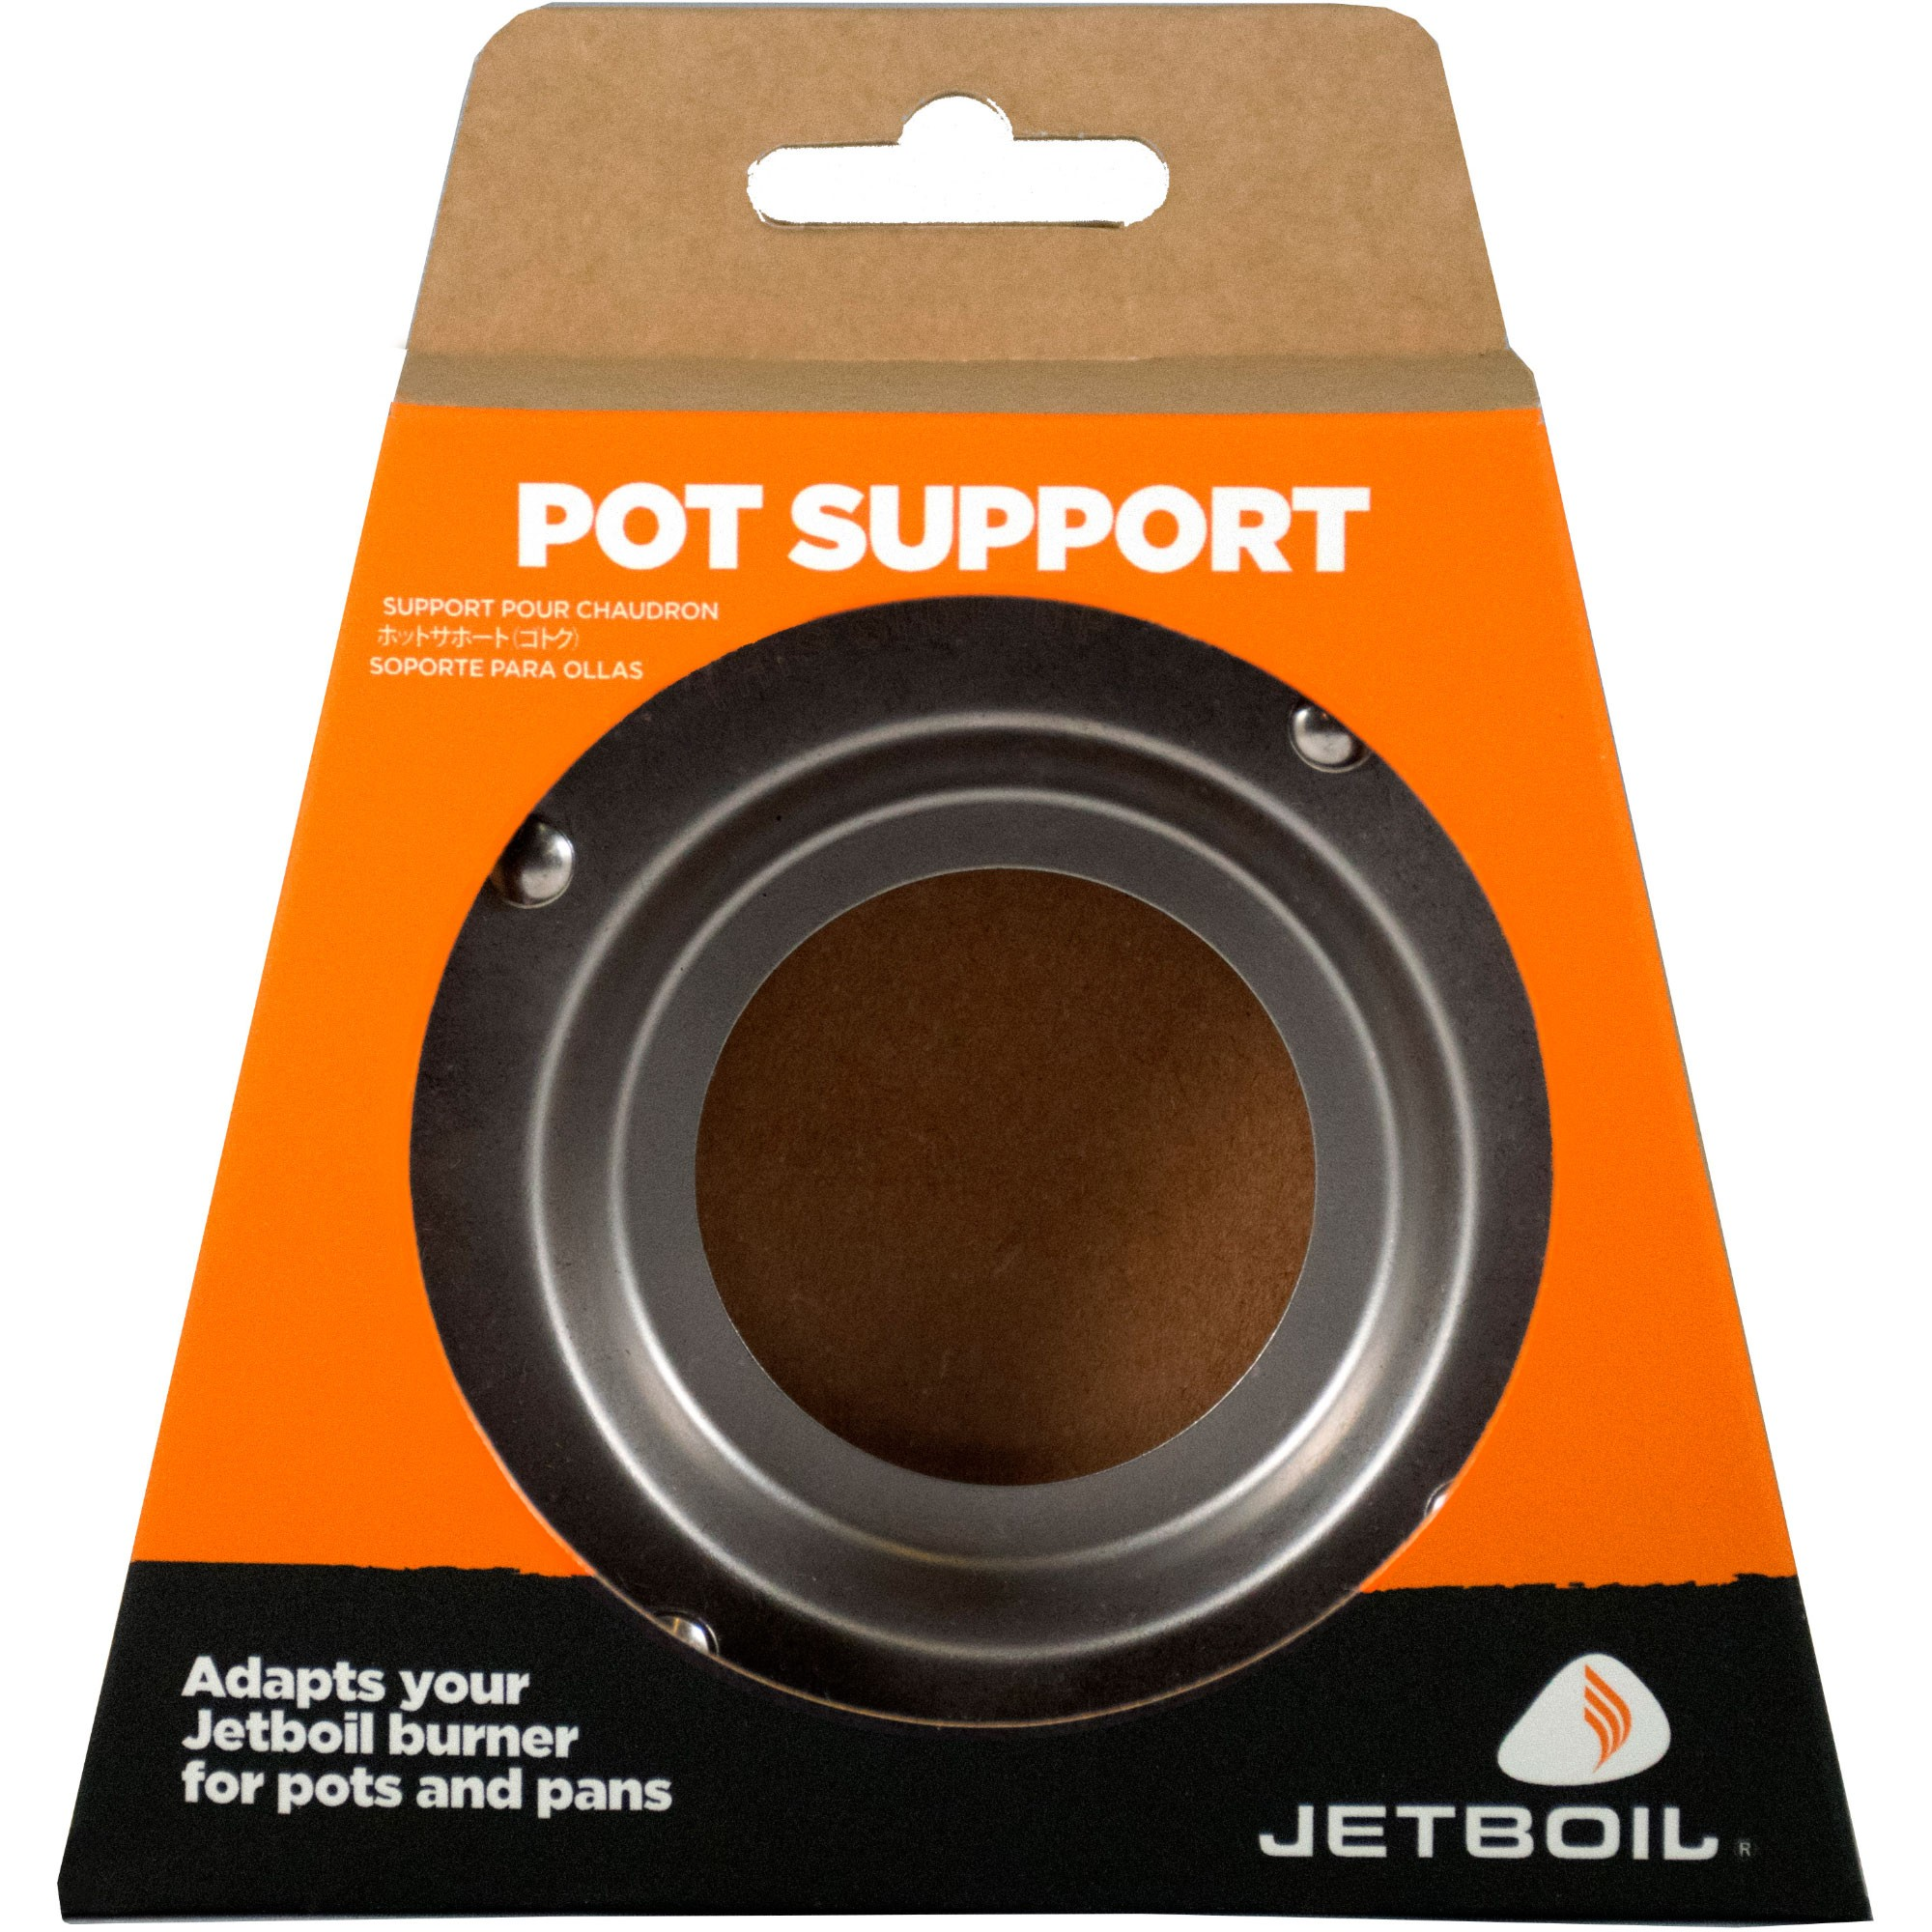 Jetboil Pot Support Stainless Steel